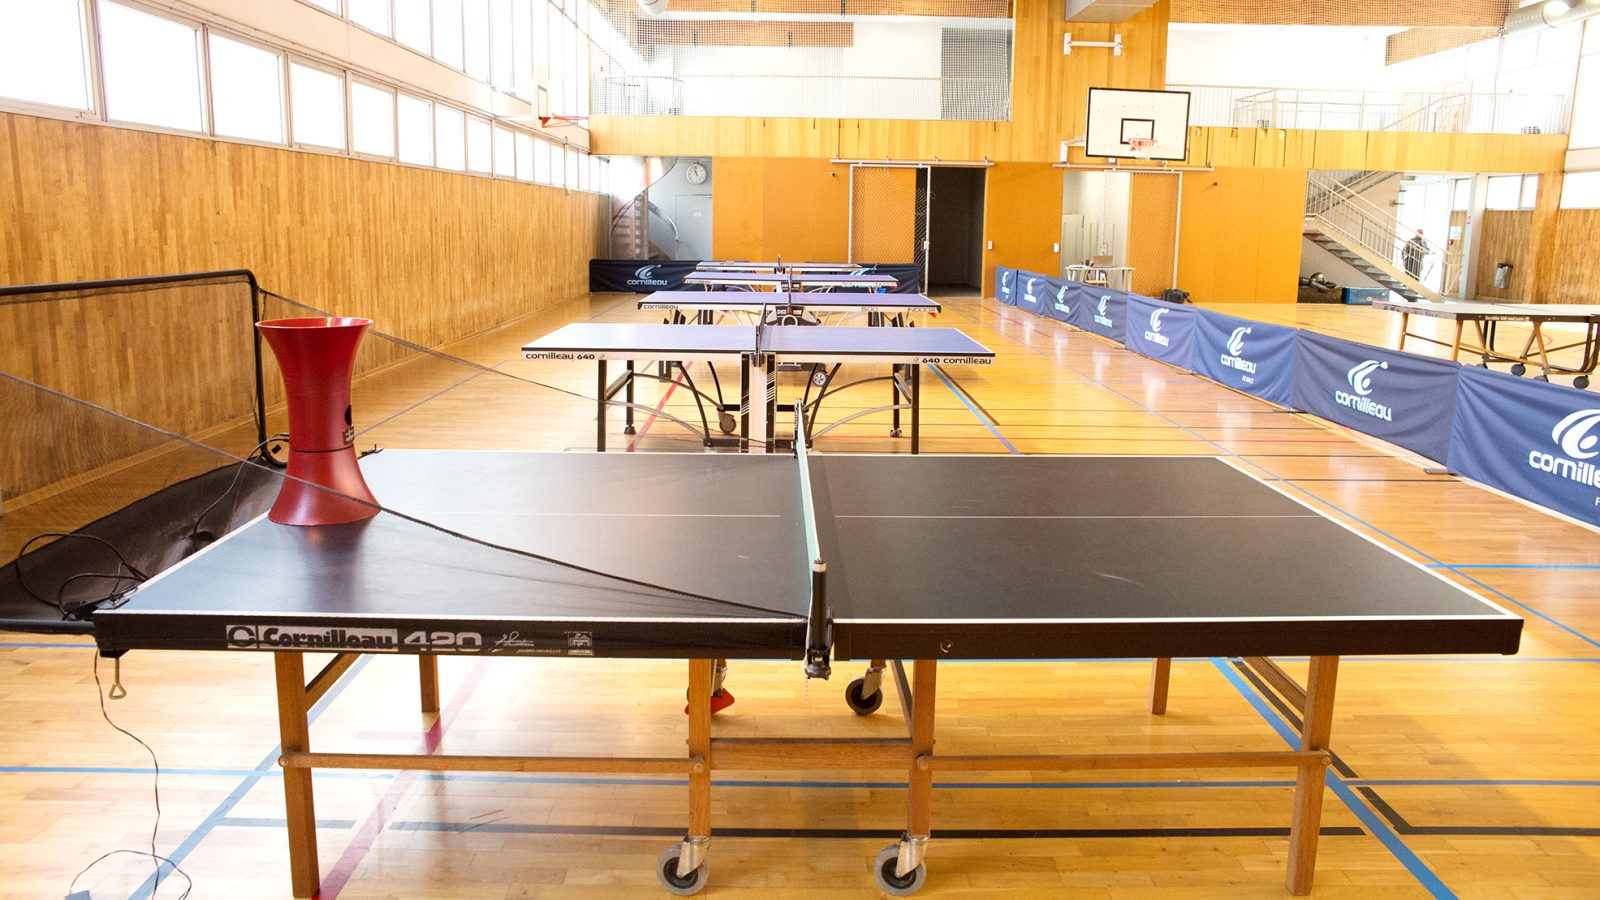 uscc_tennis_table_02